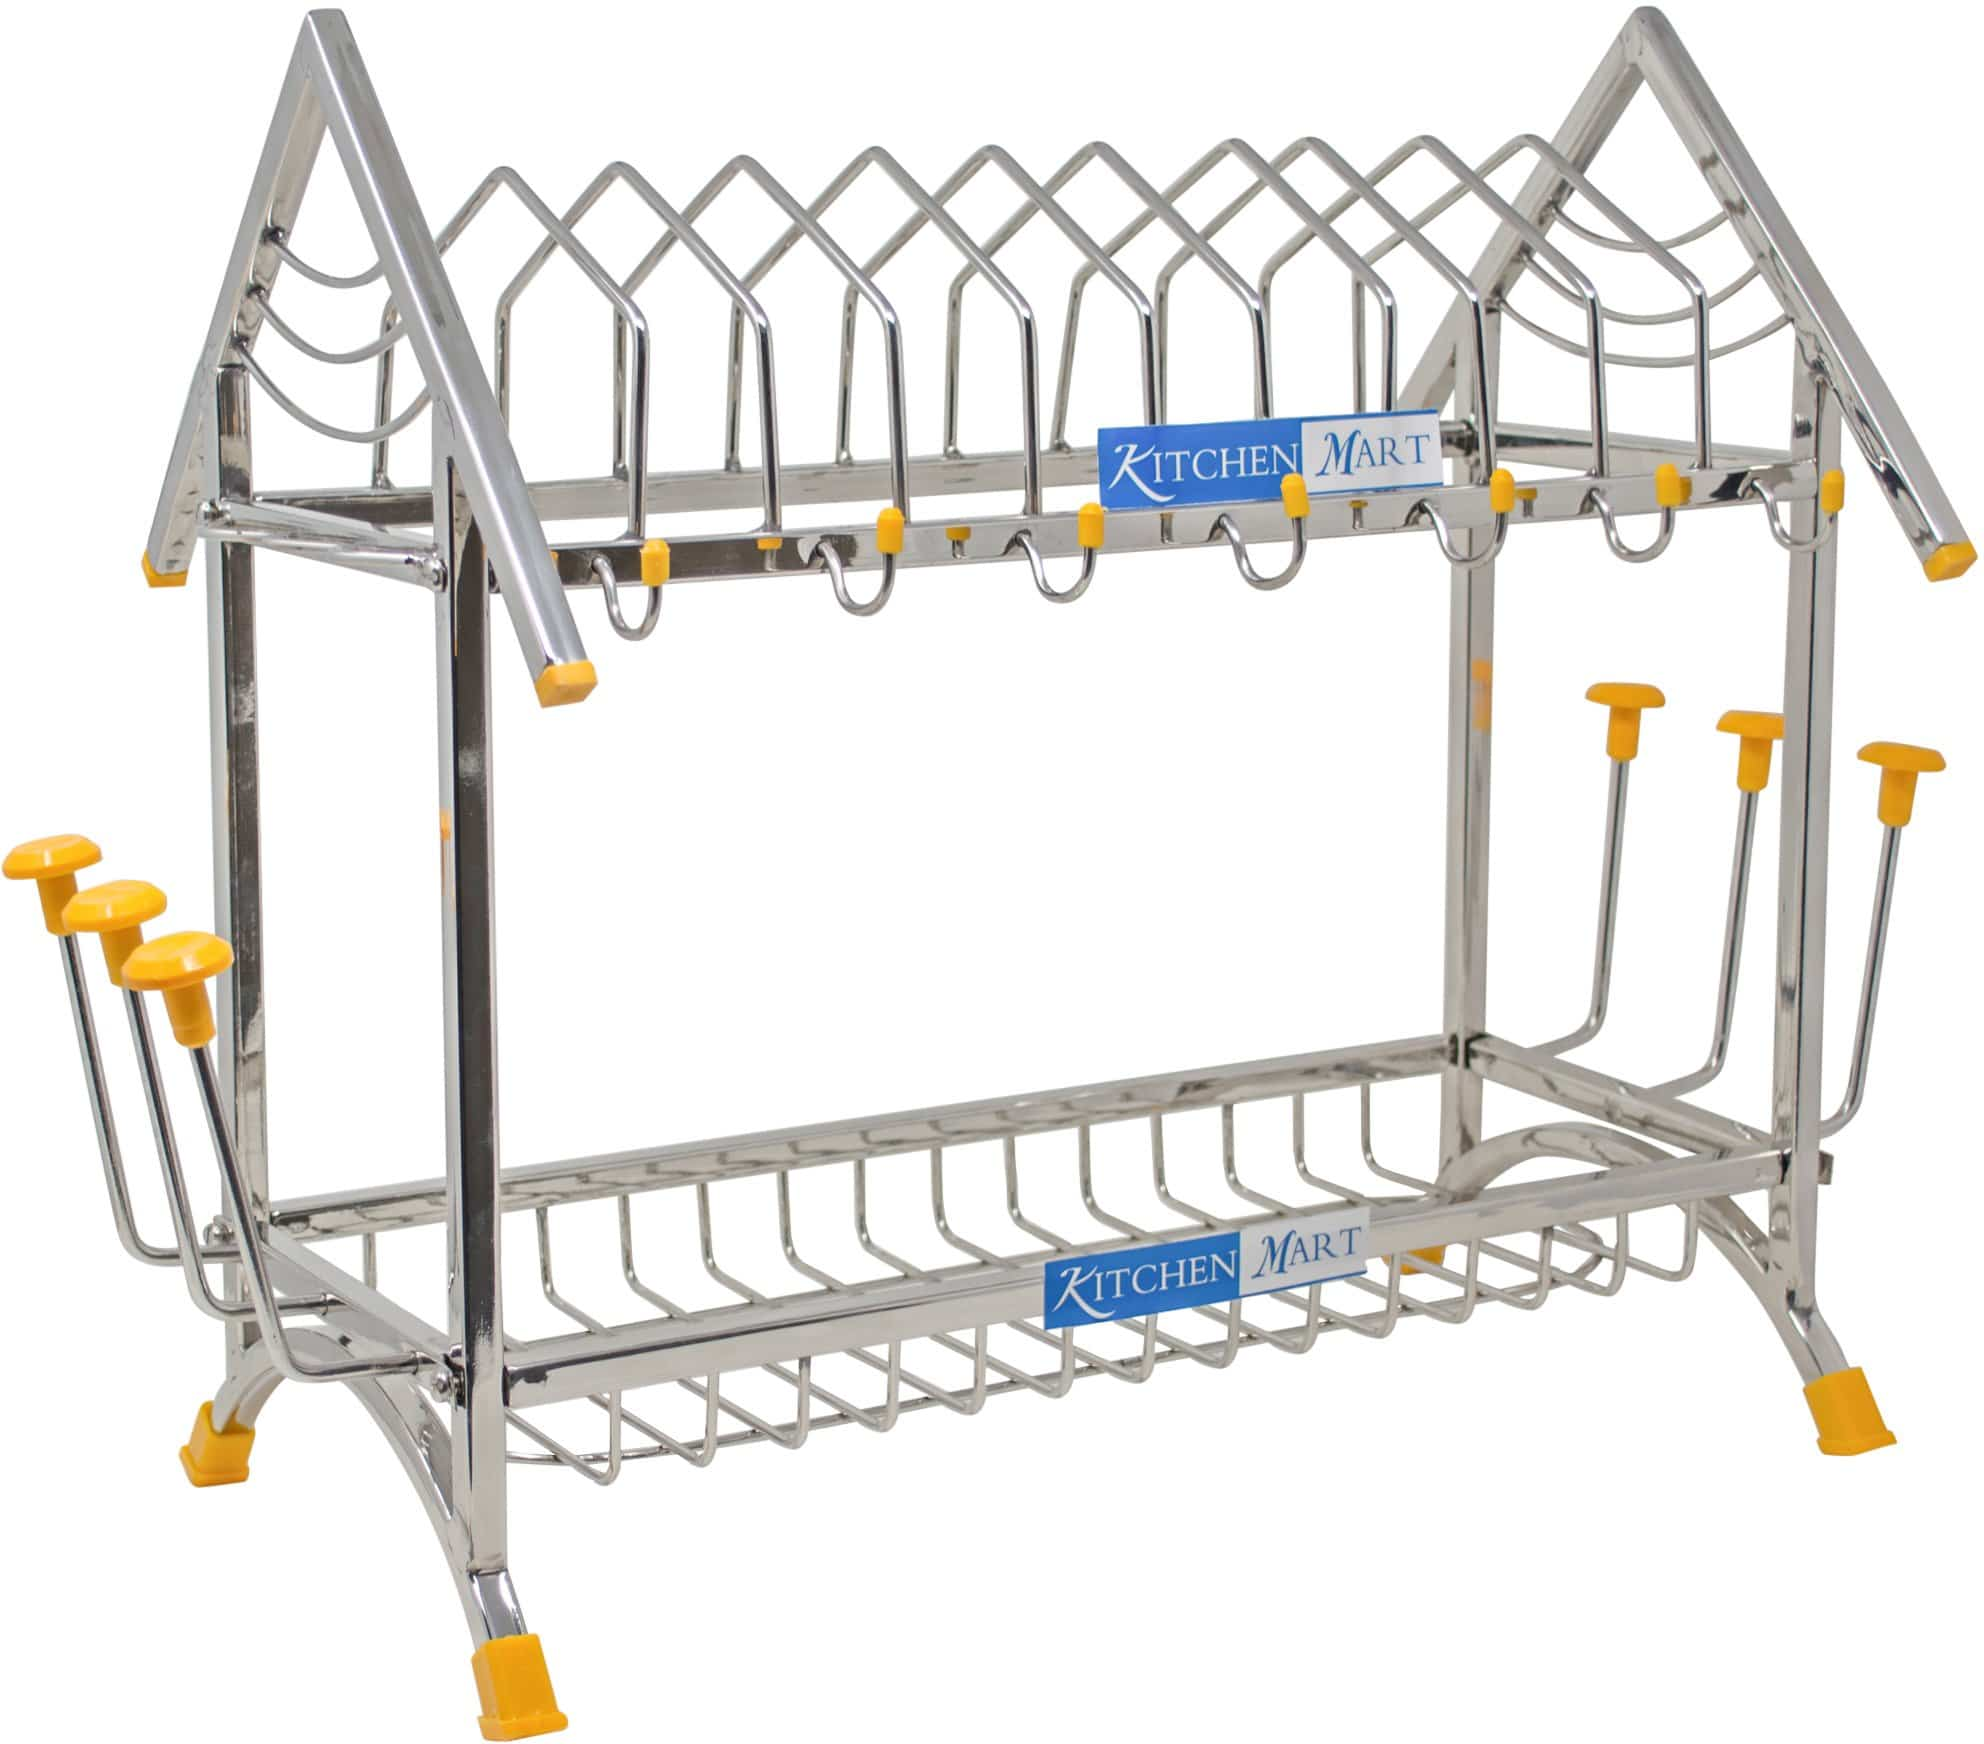 Kitchen Mart Stainless Steel Happy Home Kitchen Rack - KITCHEN MART